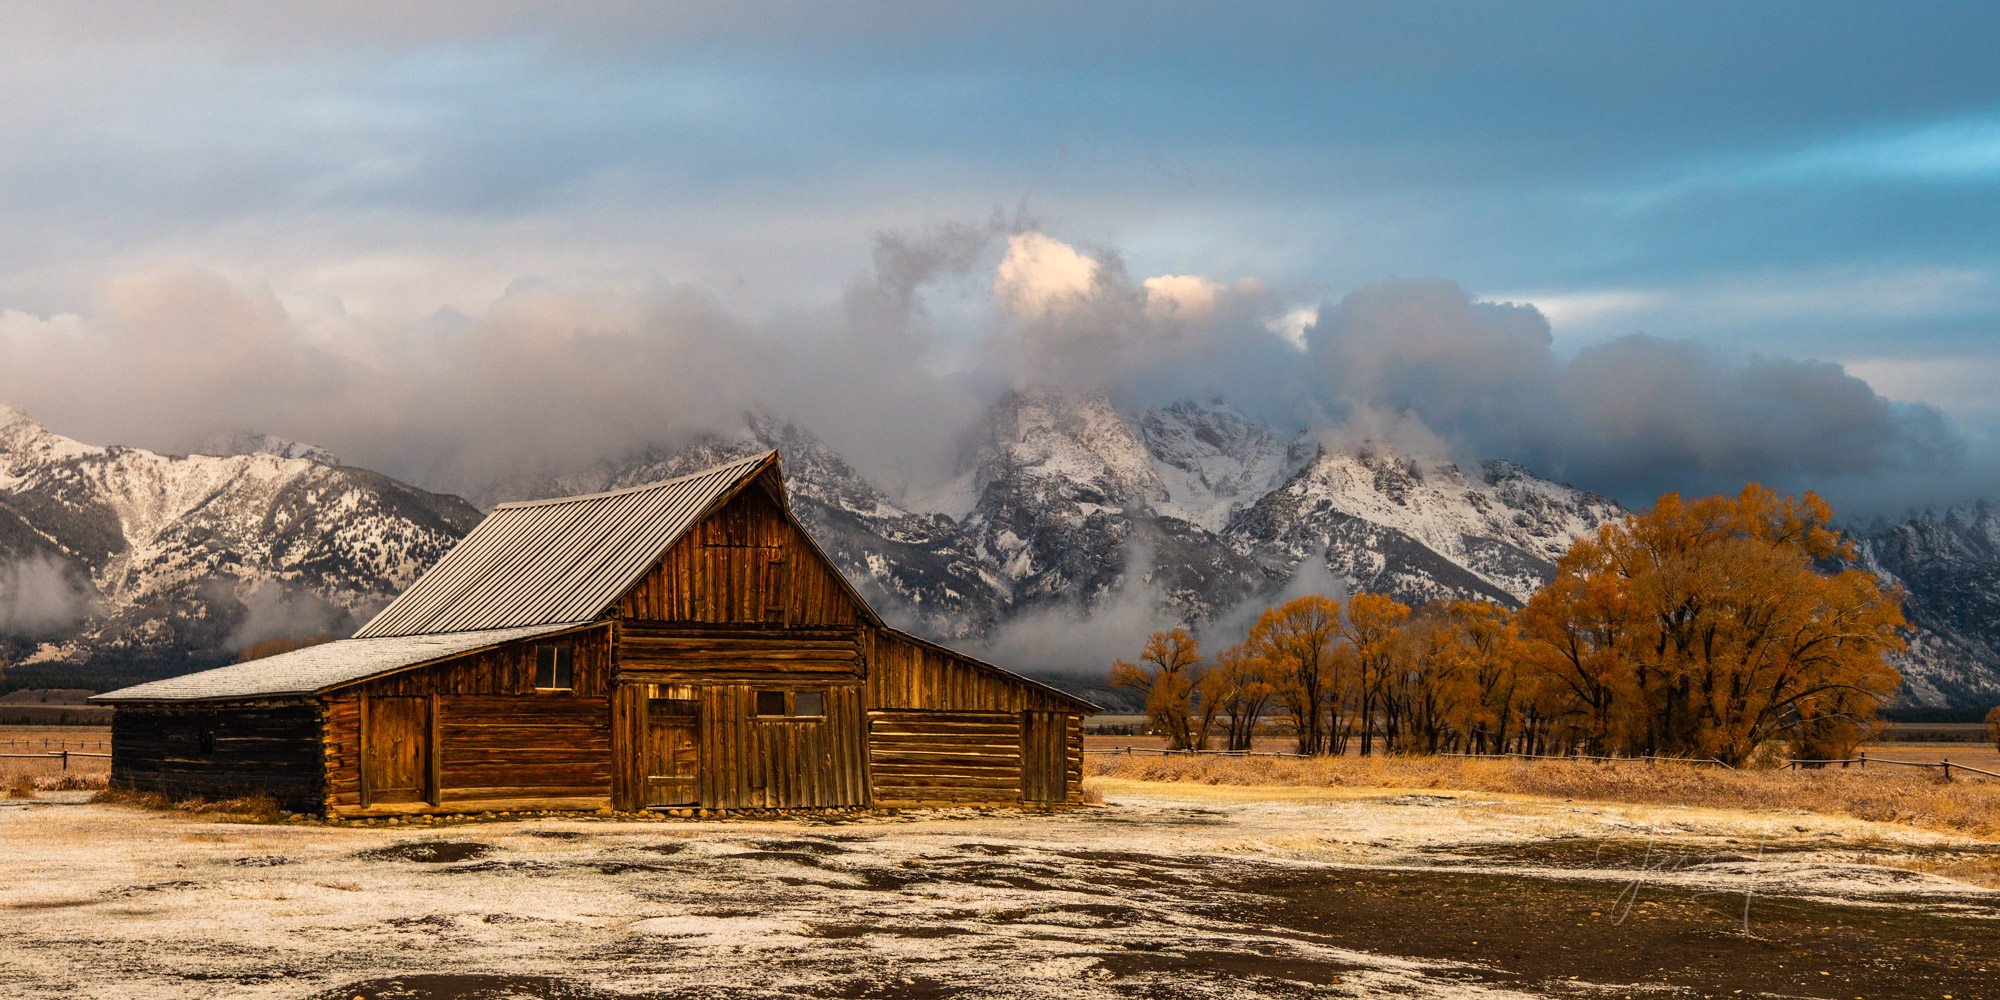 photo of barn and Grand Tetons in Wyoming, snow-covered mountains, landscape photography, landscape photo, fine art print, old farm, ranch, fall, autumn colors, winter, clouds, morning, trees, high qu, photo